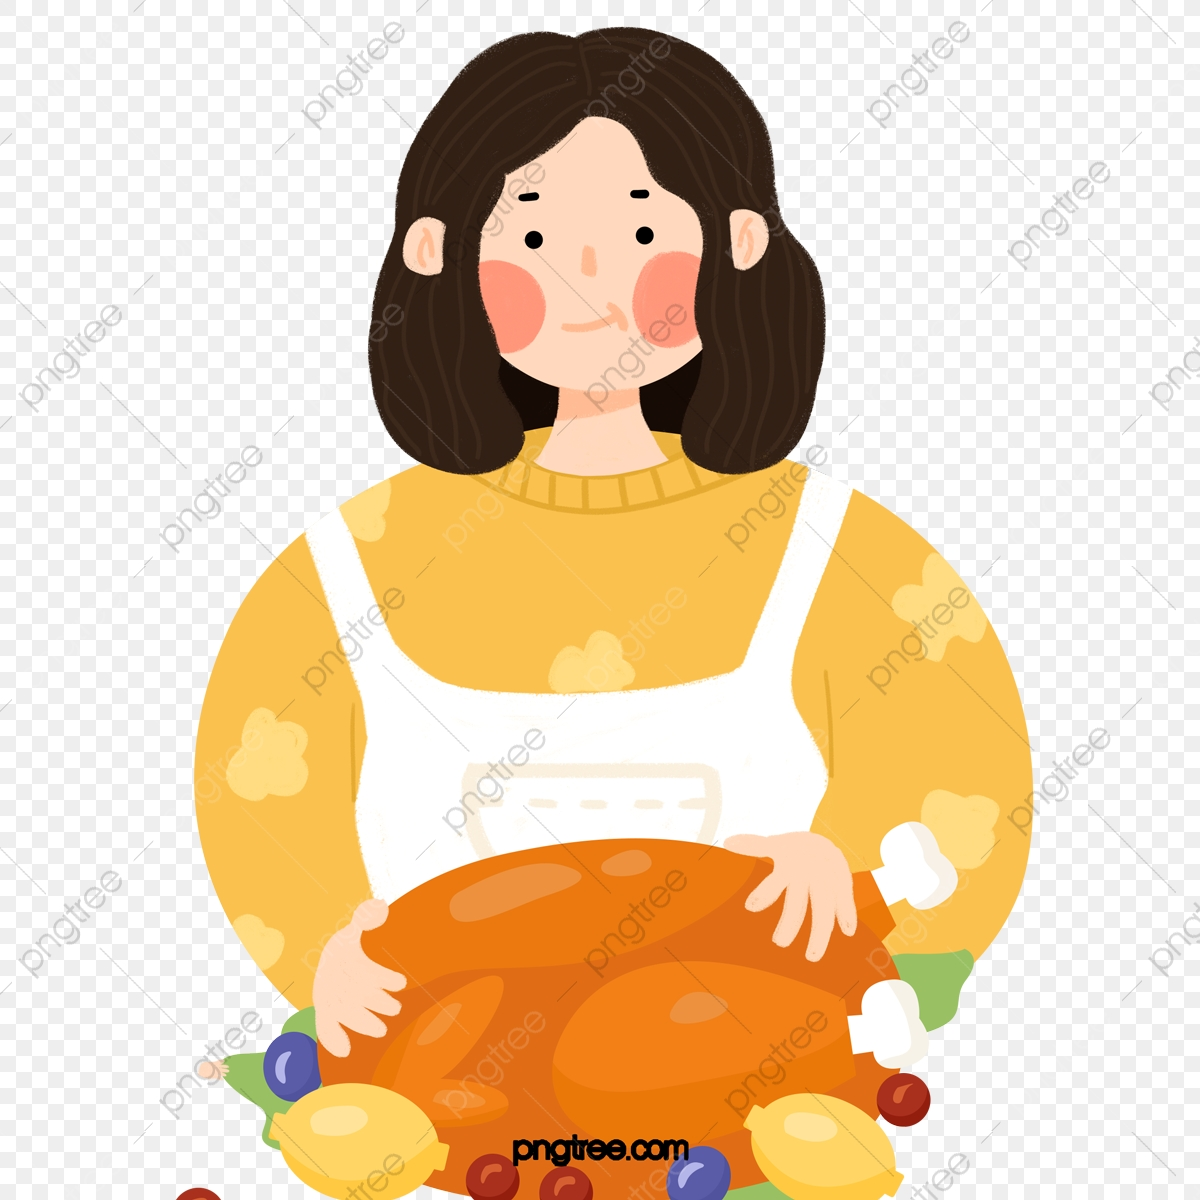 Cartoon Housewife Holding A Plate Of Turkey Housewife Female Character Png Transparent Clipart Image And Psd File For Free Download